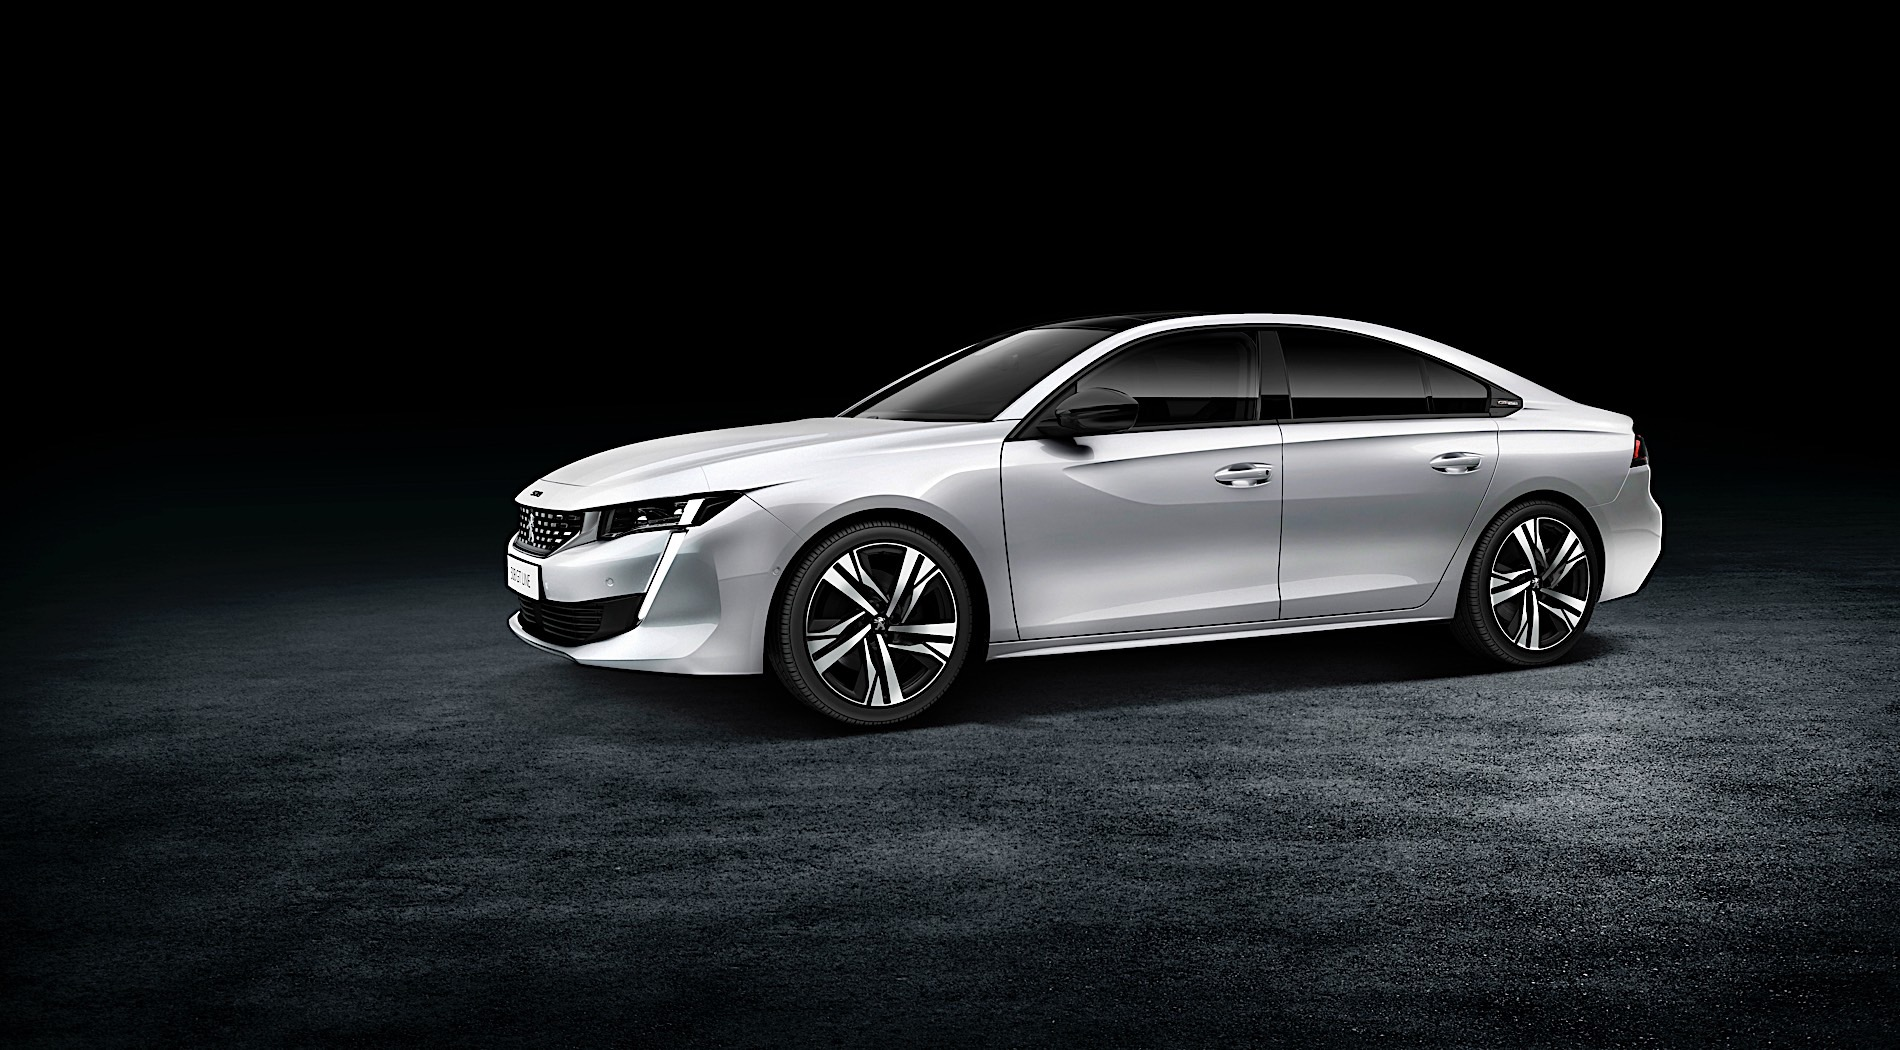 2018 Peugeot 508 Revealed In Full Glory Gt Version Confirmed